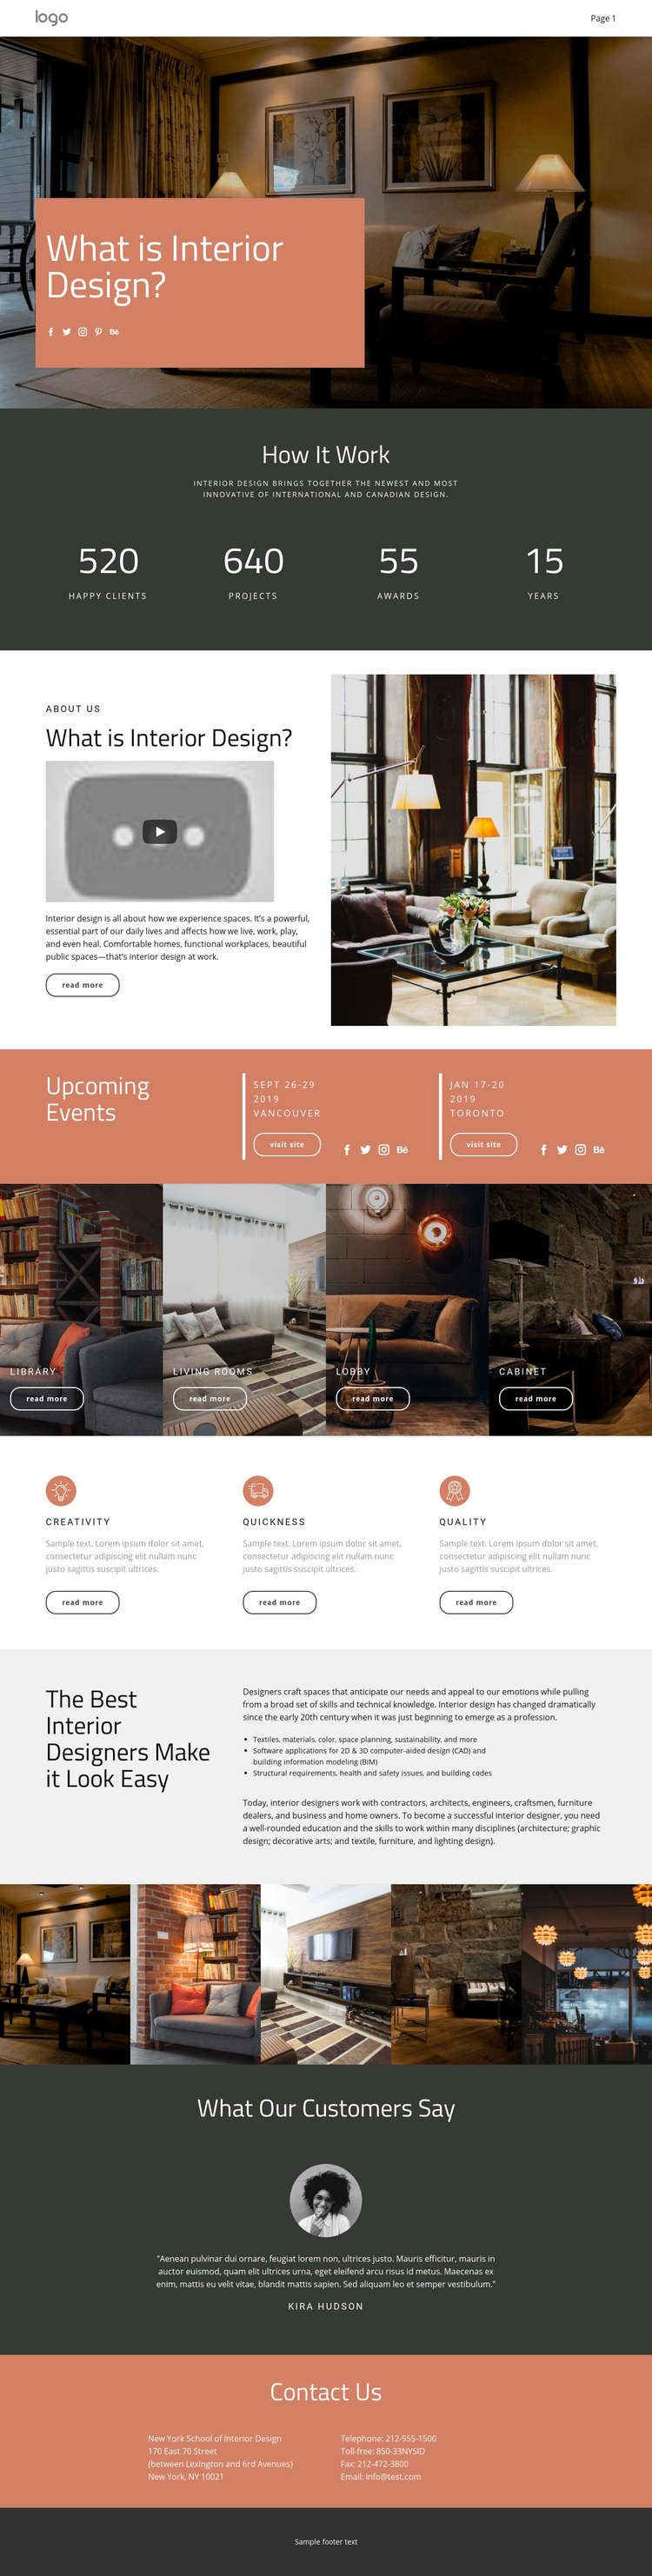 Design of houses and apartments Web Page Designer